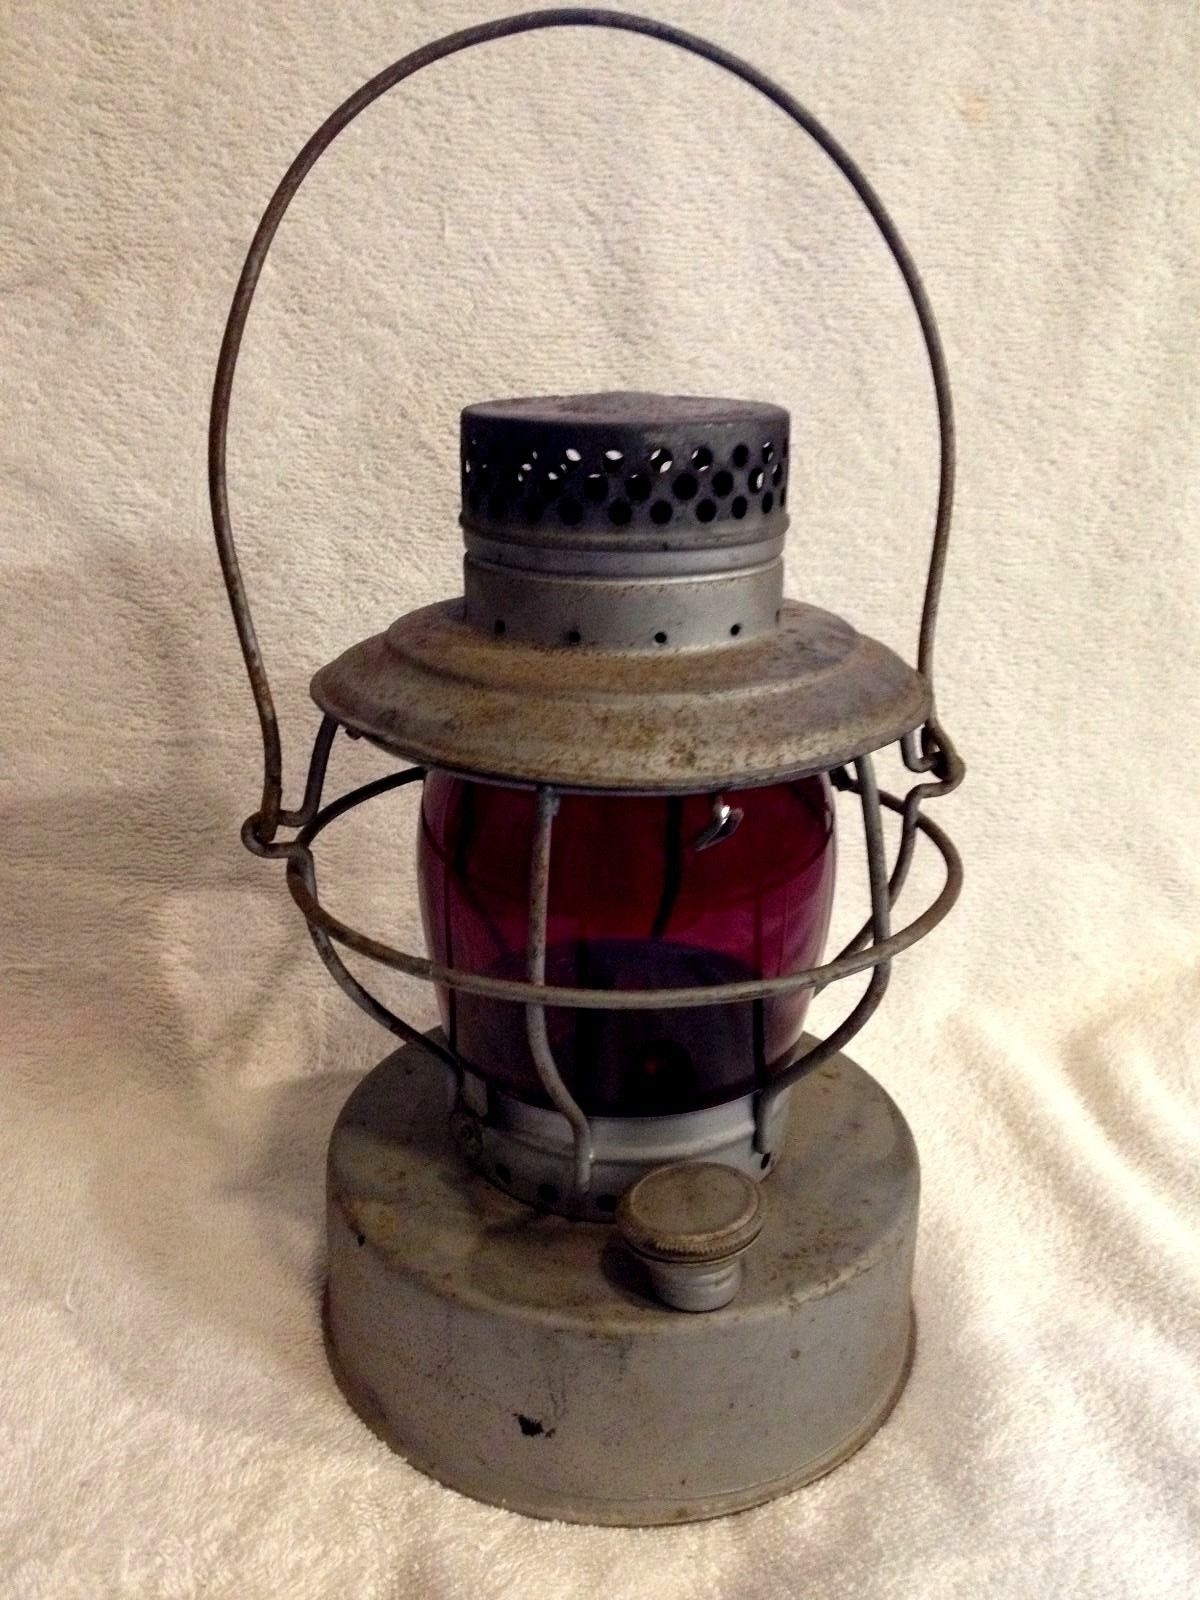 Rr Lamps, Lanterns Throughout Outdoor Railroad Lanterns (View 2 of 20)